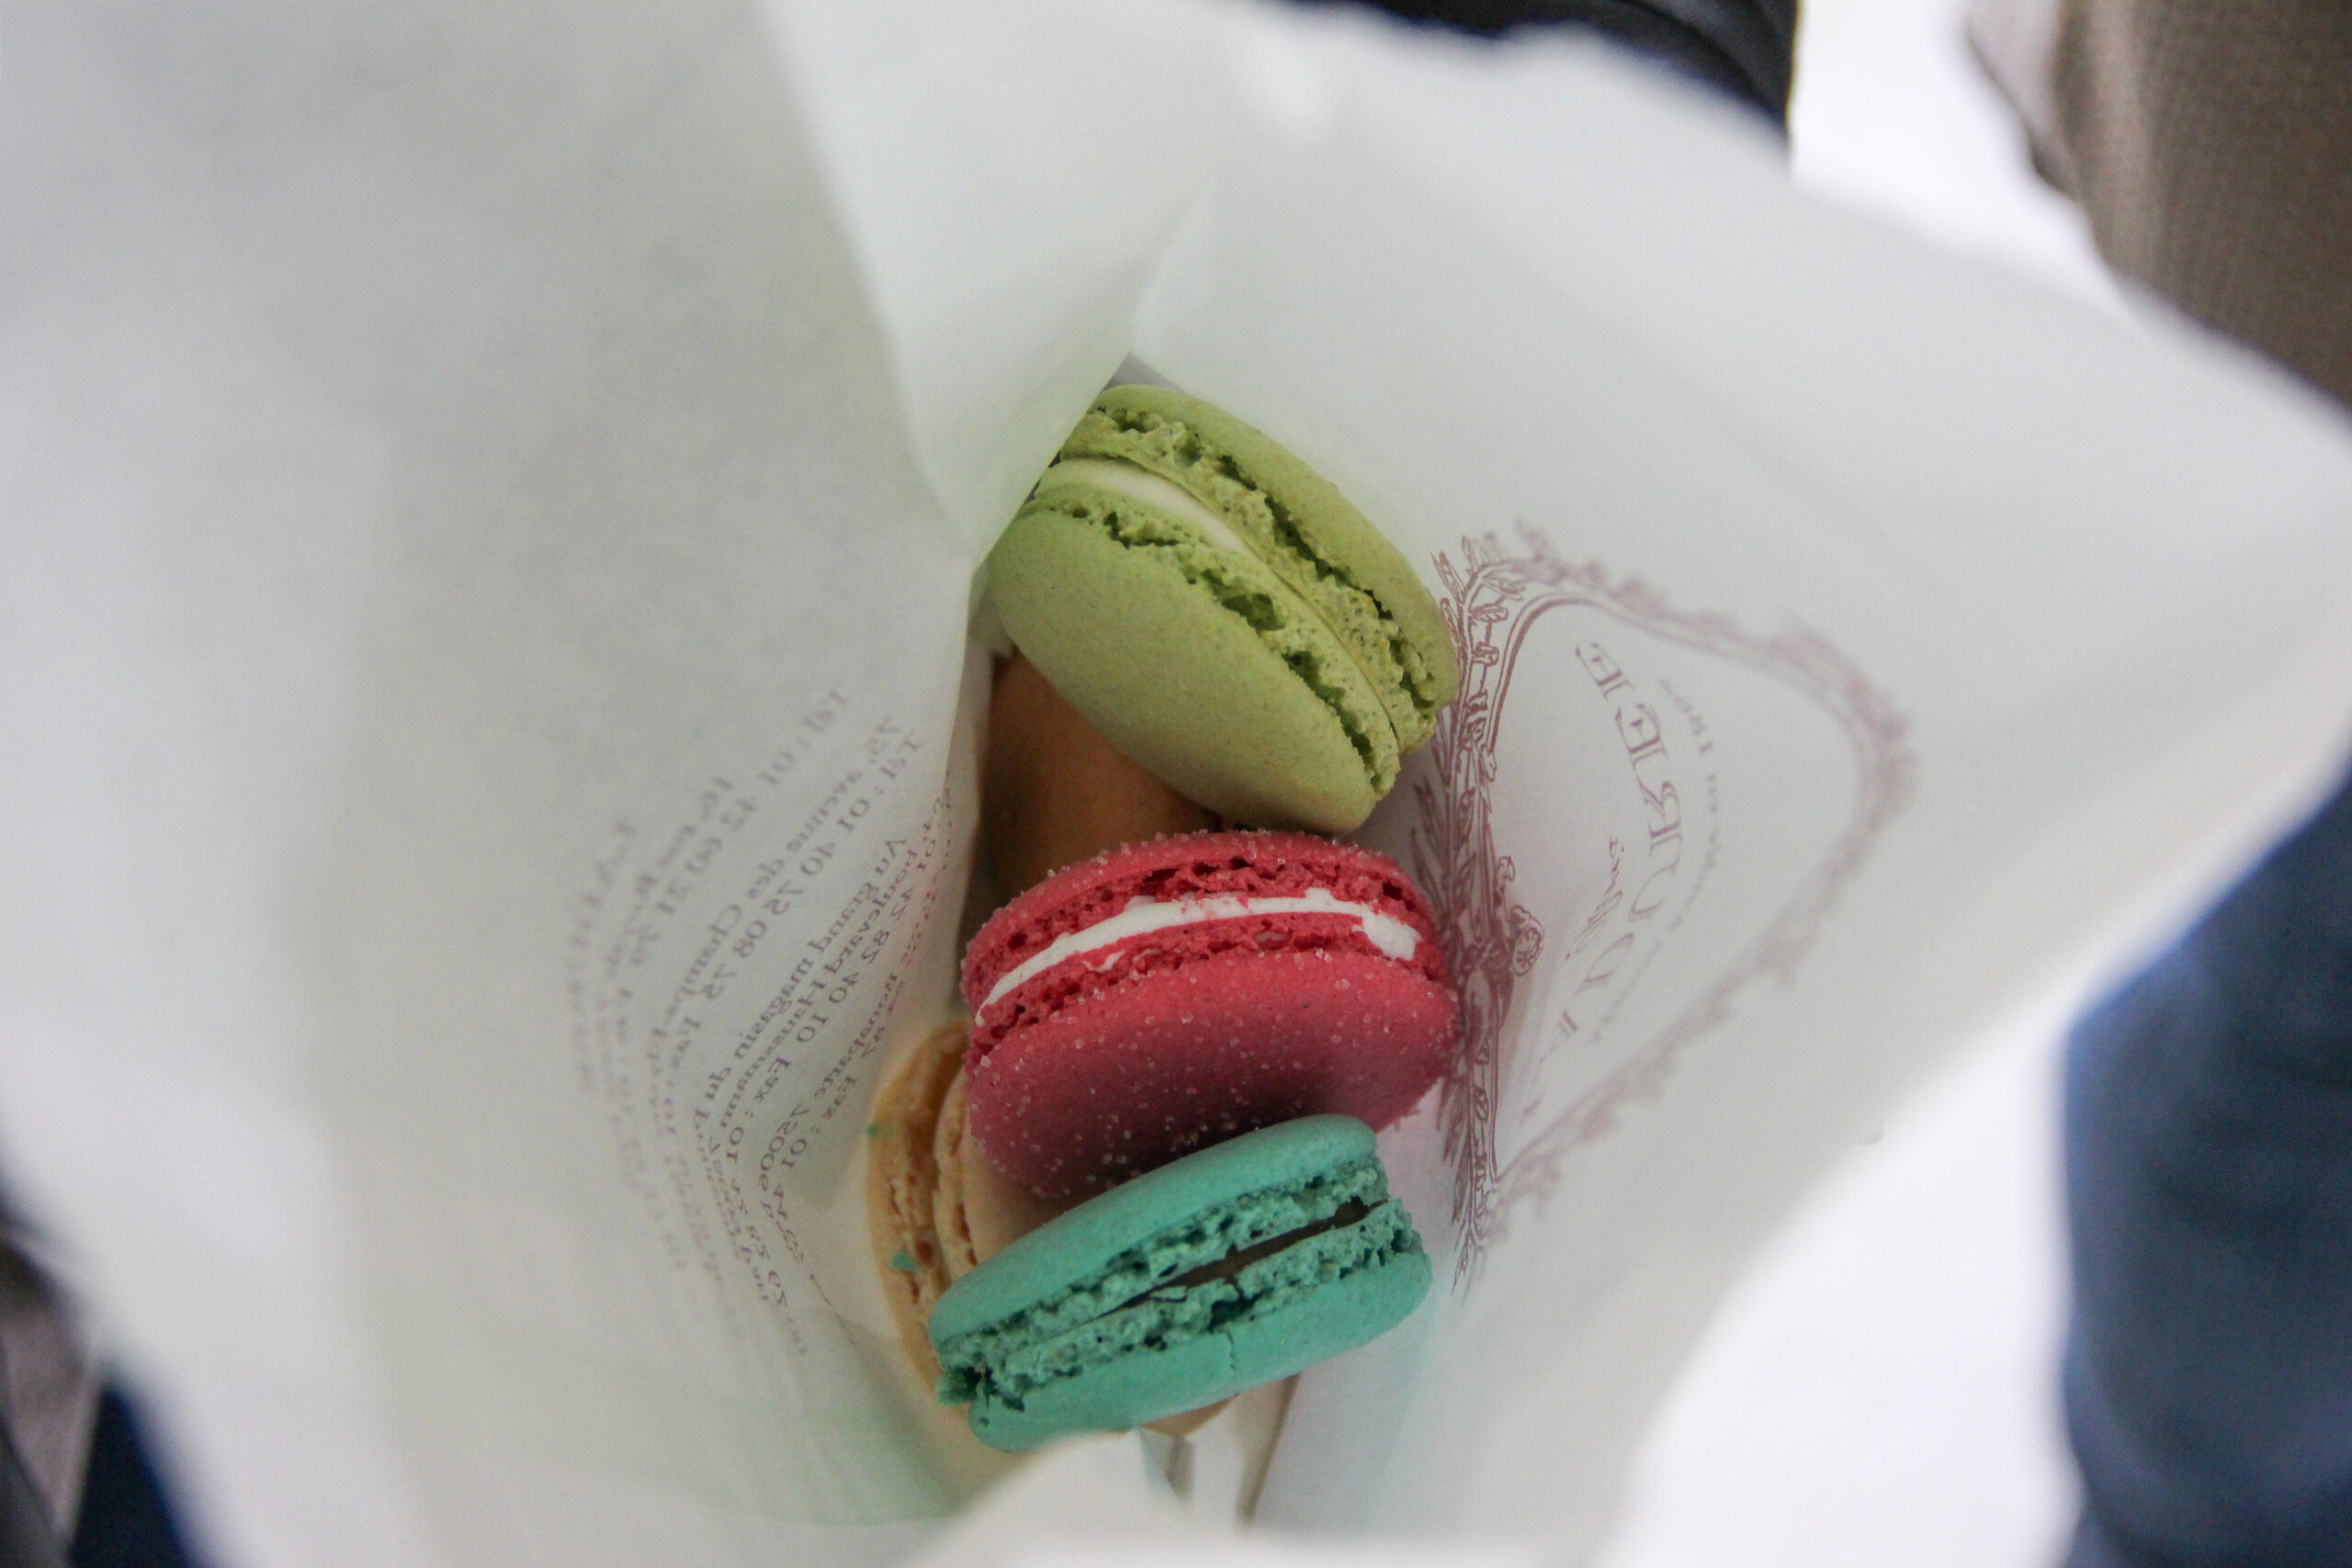 Laduree makroner Paris